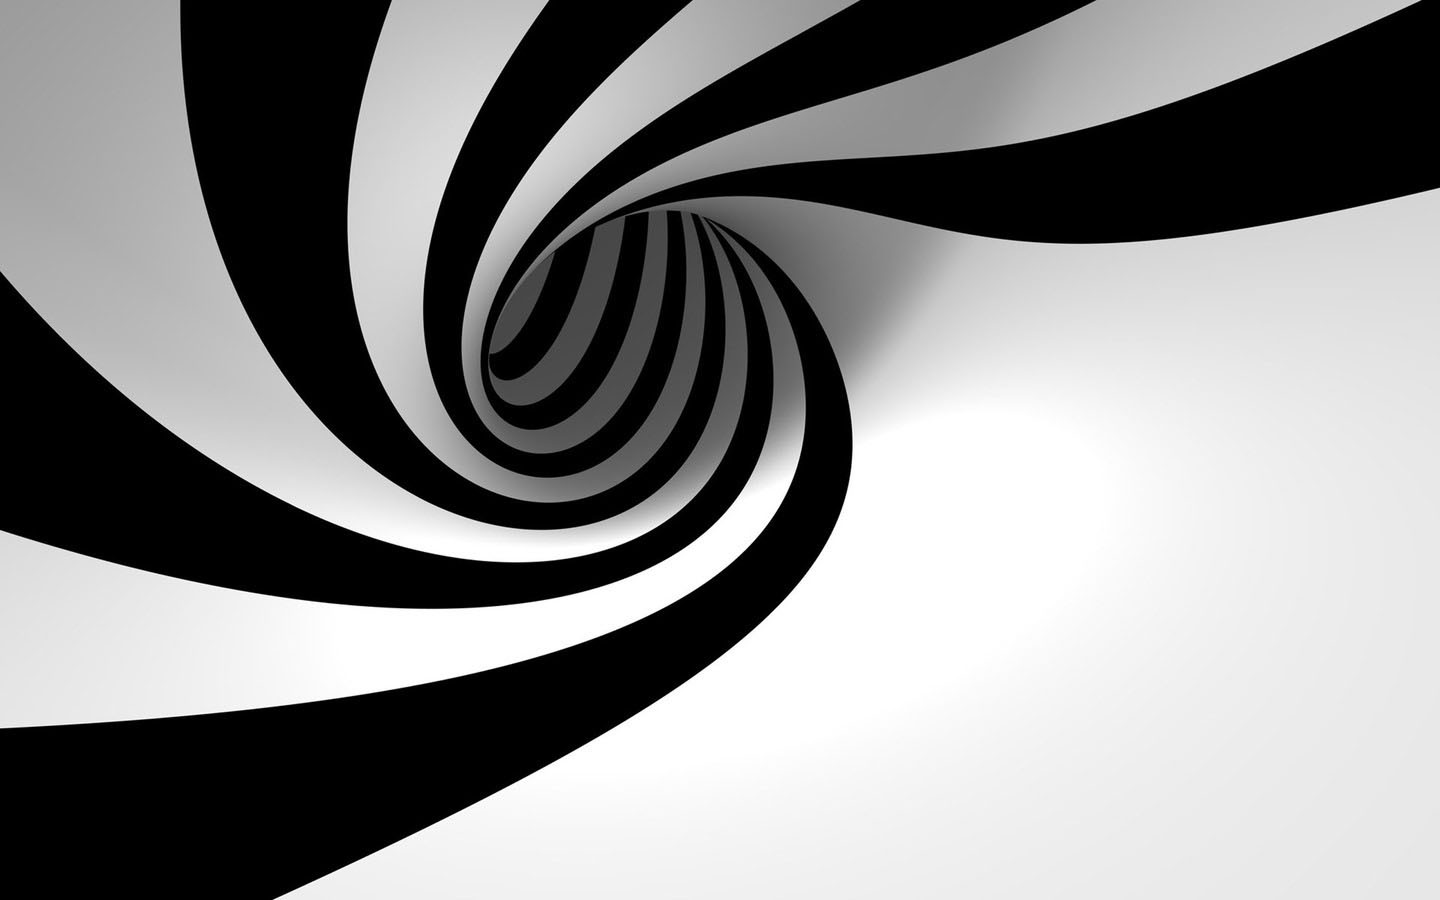 swirl of hypnosis white abstract black and white stripes